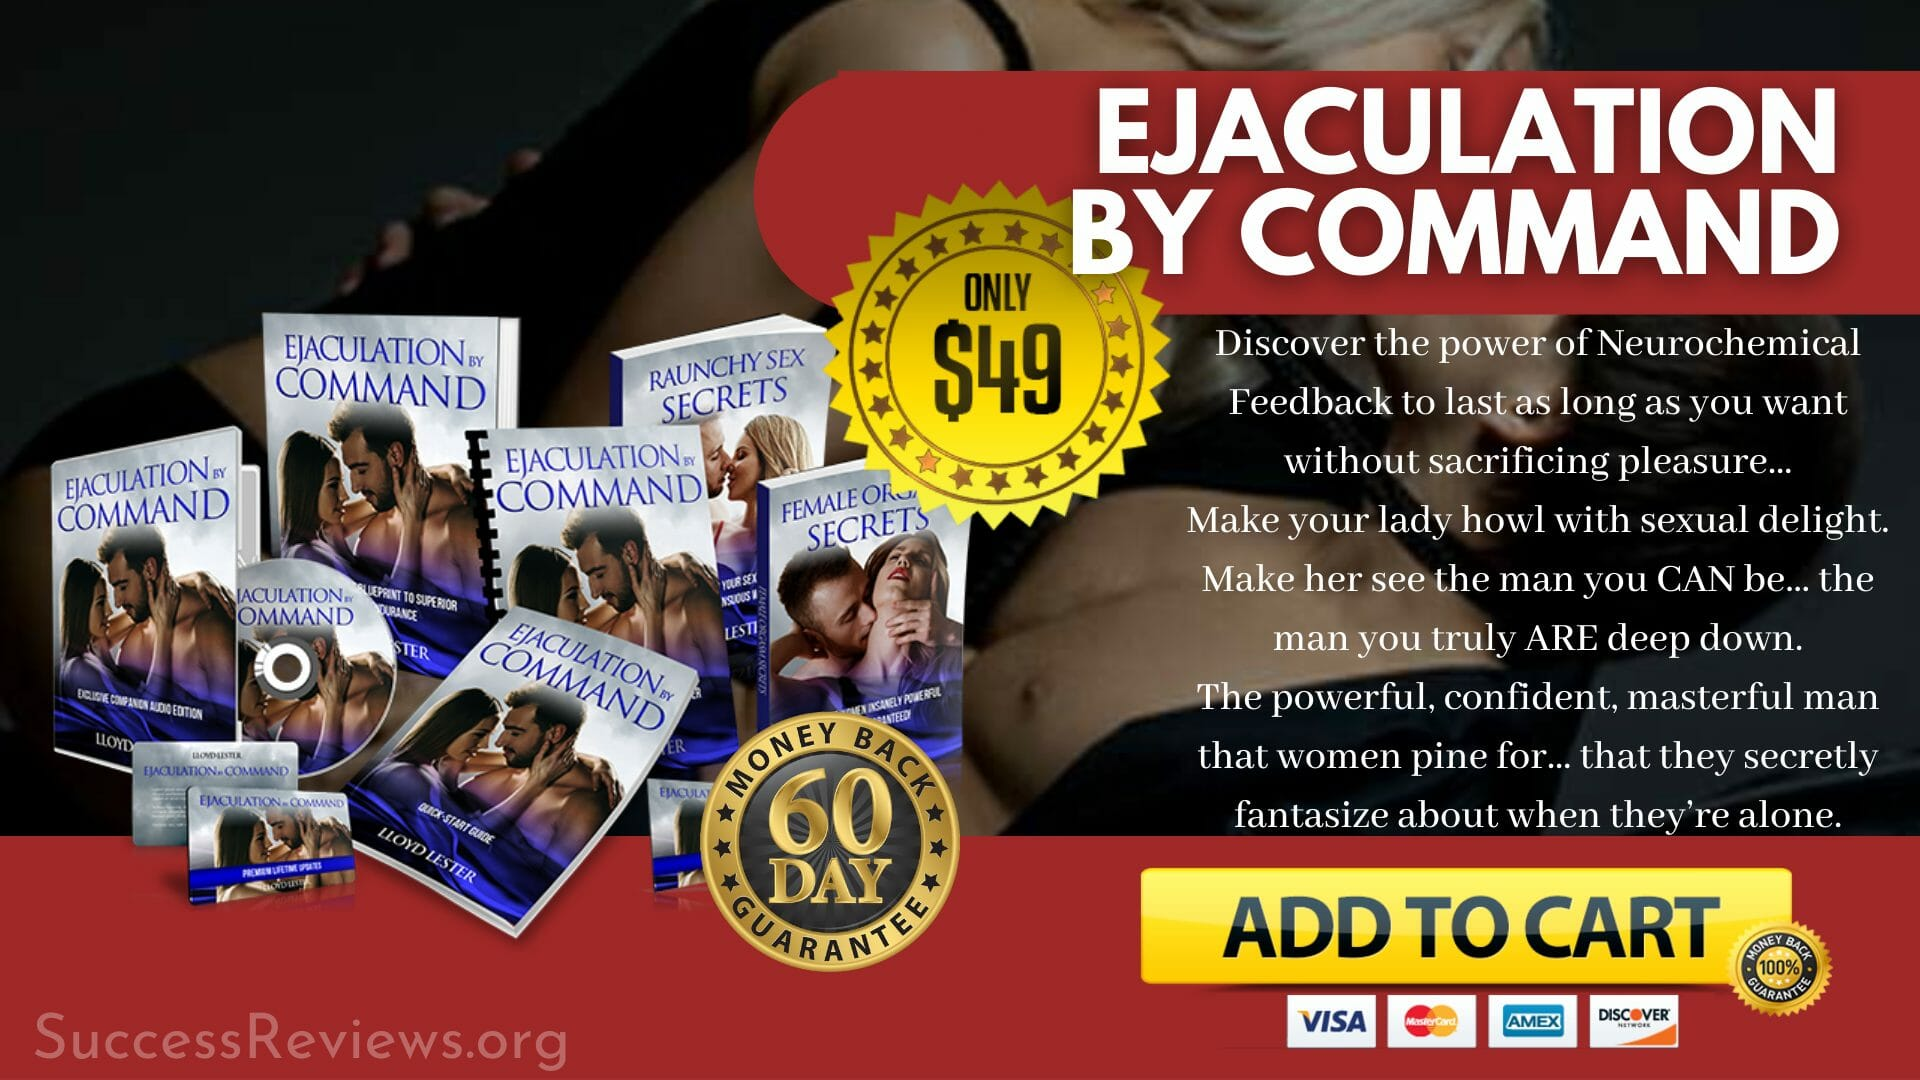 Ejaculation by Command Featured Image